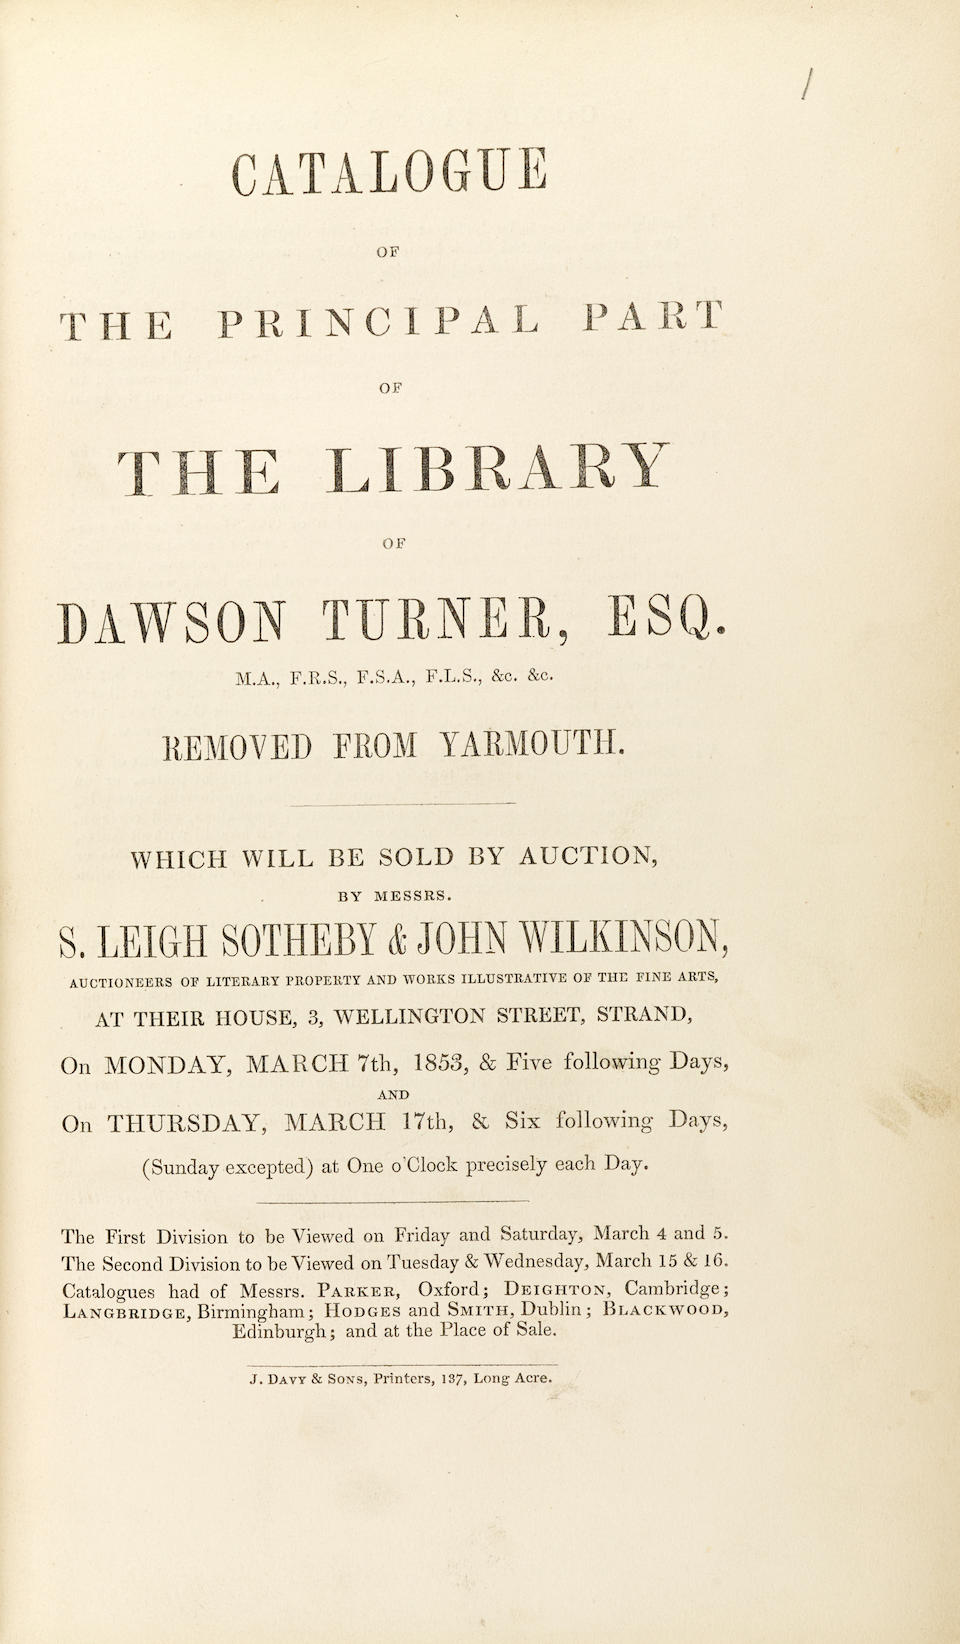 [TURNER, DAWSON. 1775-1858.] Catalogue of the Principal Part [- Remaining Portion] of the Library of Dawson Turner ... Removed from Yarmouth. BOUND WITH: Descriptive Catalogues of the Entire Manuscript Library. [London]: Sotheby & Wilkinson / Puttick & Simpson, Auctioneers, 1853 & 1859.